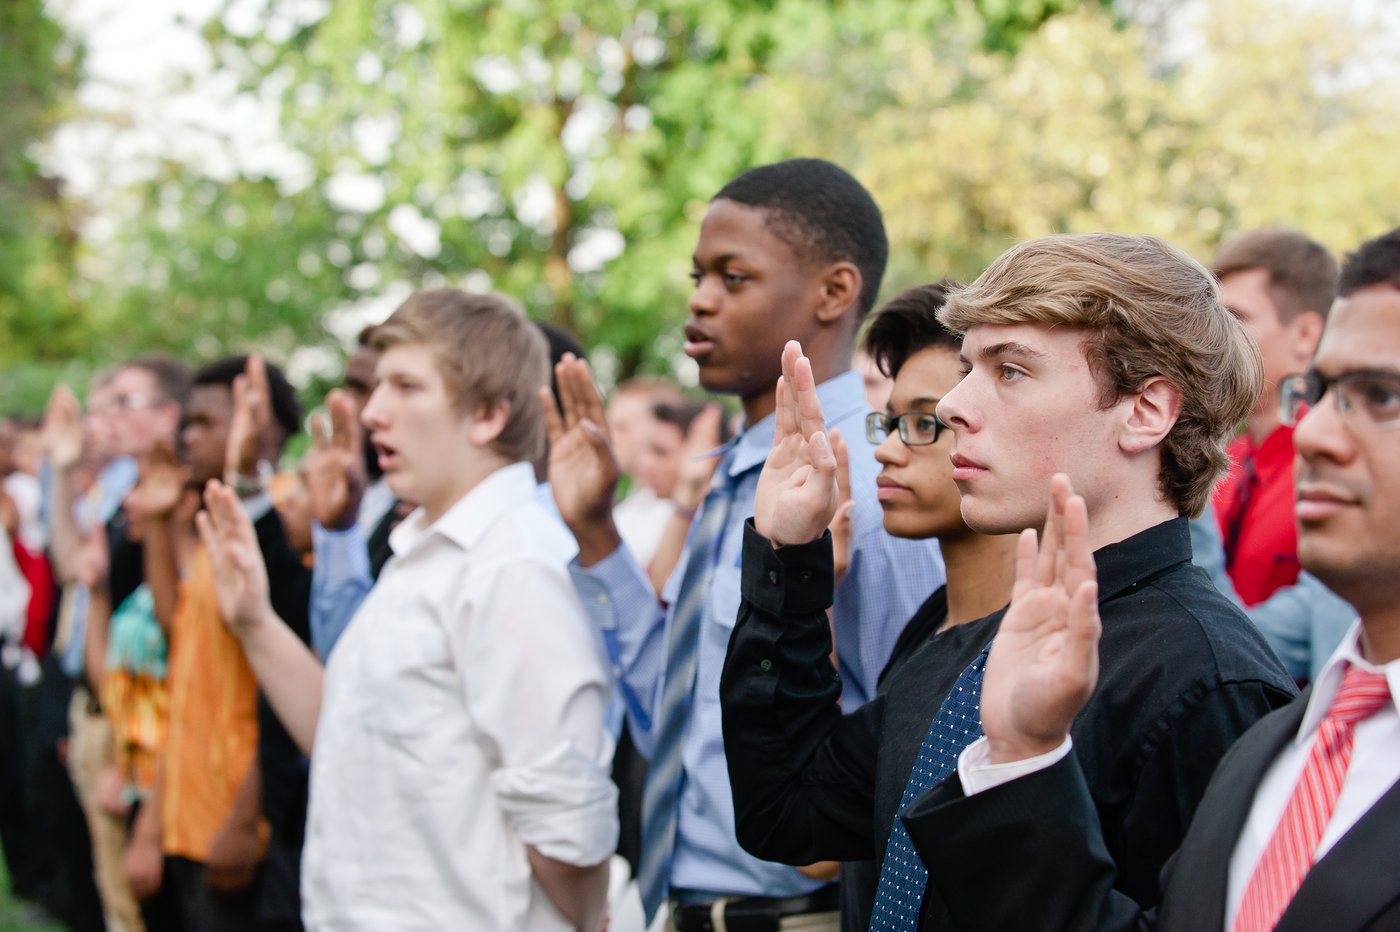 Our Community Salutes - Help sponsor our ceremony honoring new high school graduates enlisting in the U. S. Armed Forces.$250+